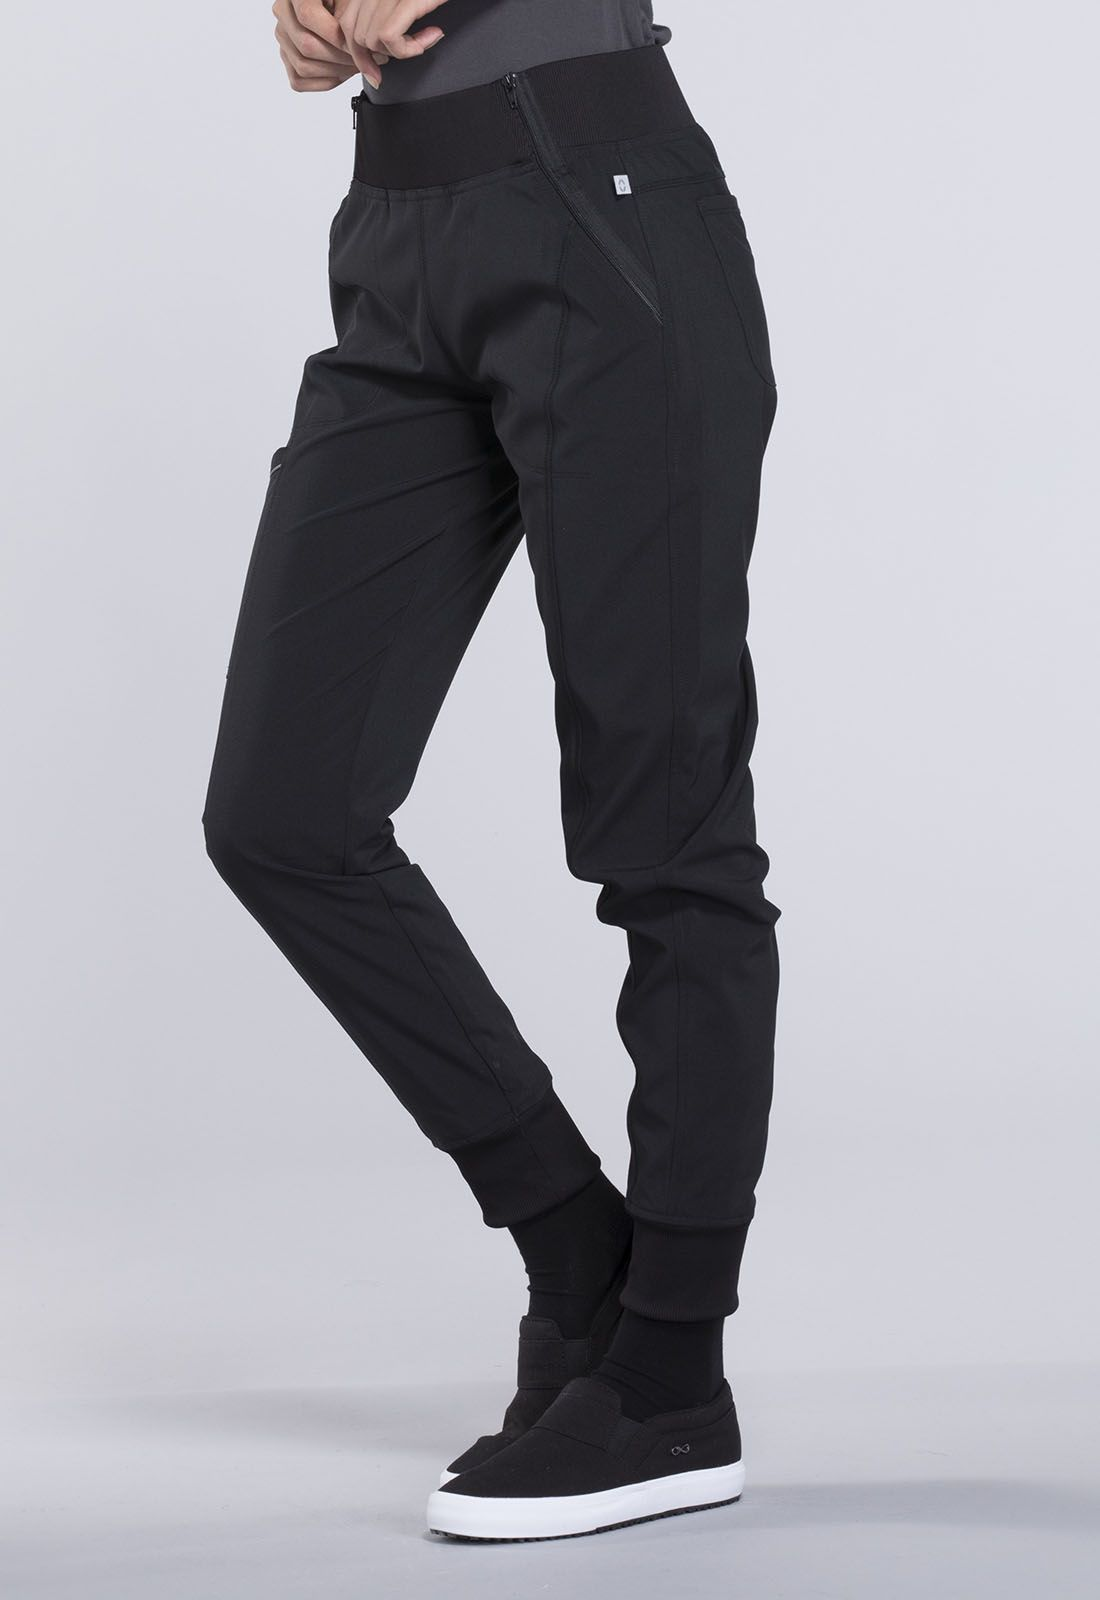 https://medcloth.by/images/stories/virtuemart/product/ck110-black-2.jpg